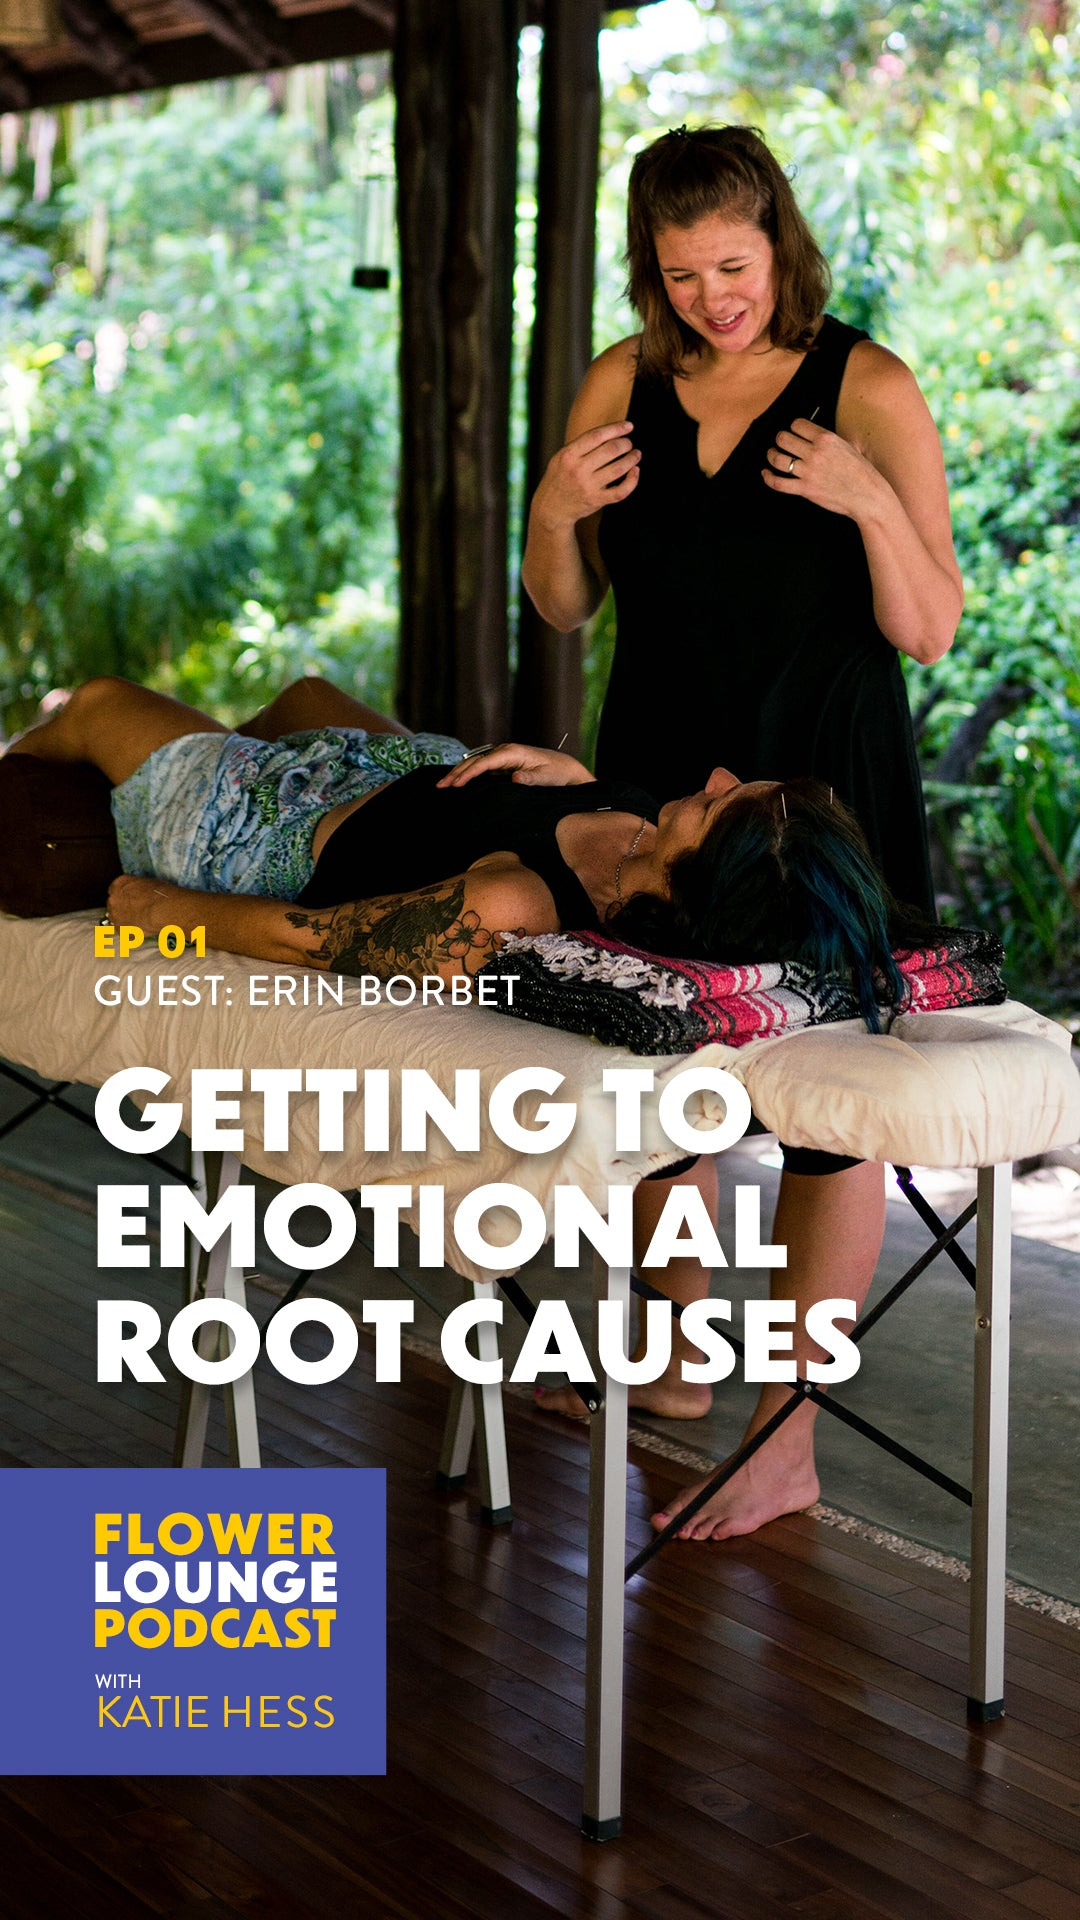 Getting to Emotional Root Causes with Erin Borbet